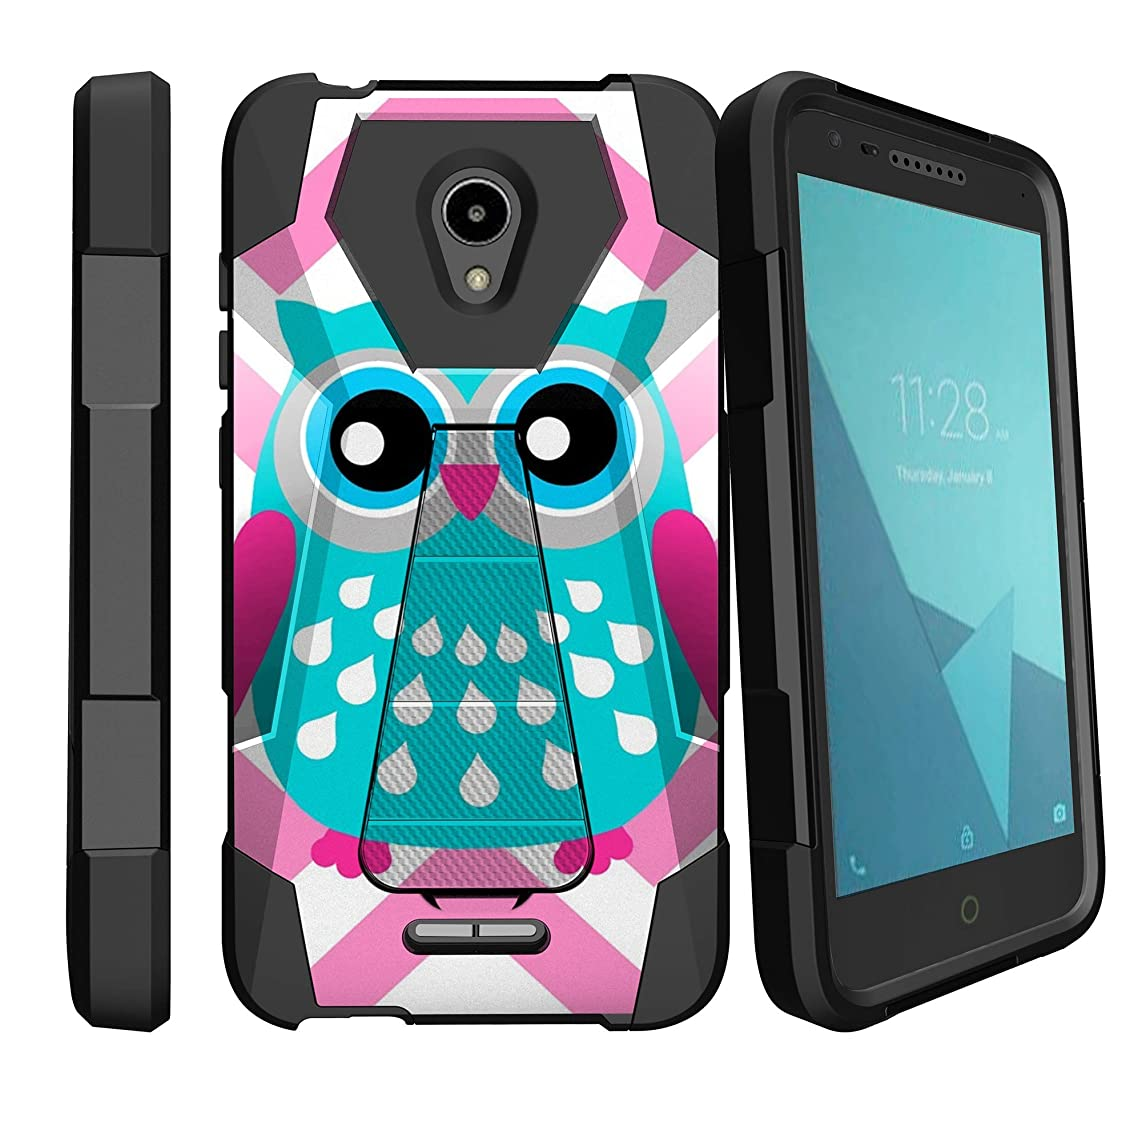 MINITURTLE Compatible with Alcatel Verso, Ideal Xcite, Raven A574BL, Fiji Kickstand Dual Layer Hybrid Drop Protection Shock Absorbing Rugged - Blue Pink Owl